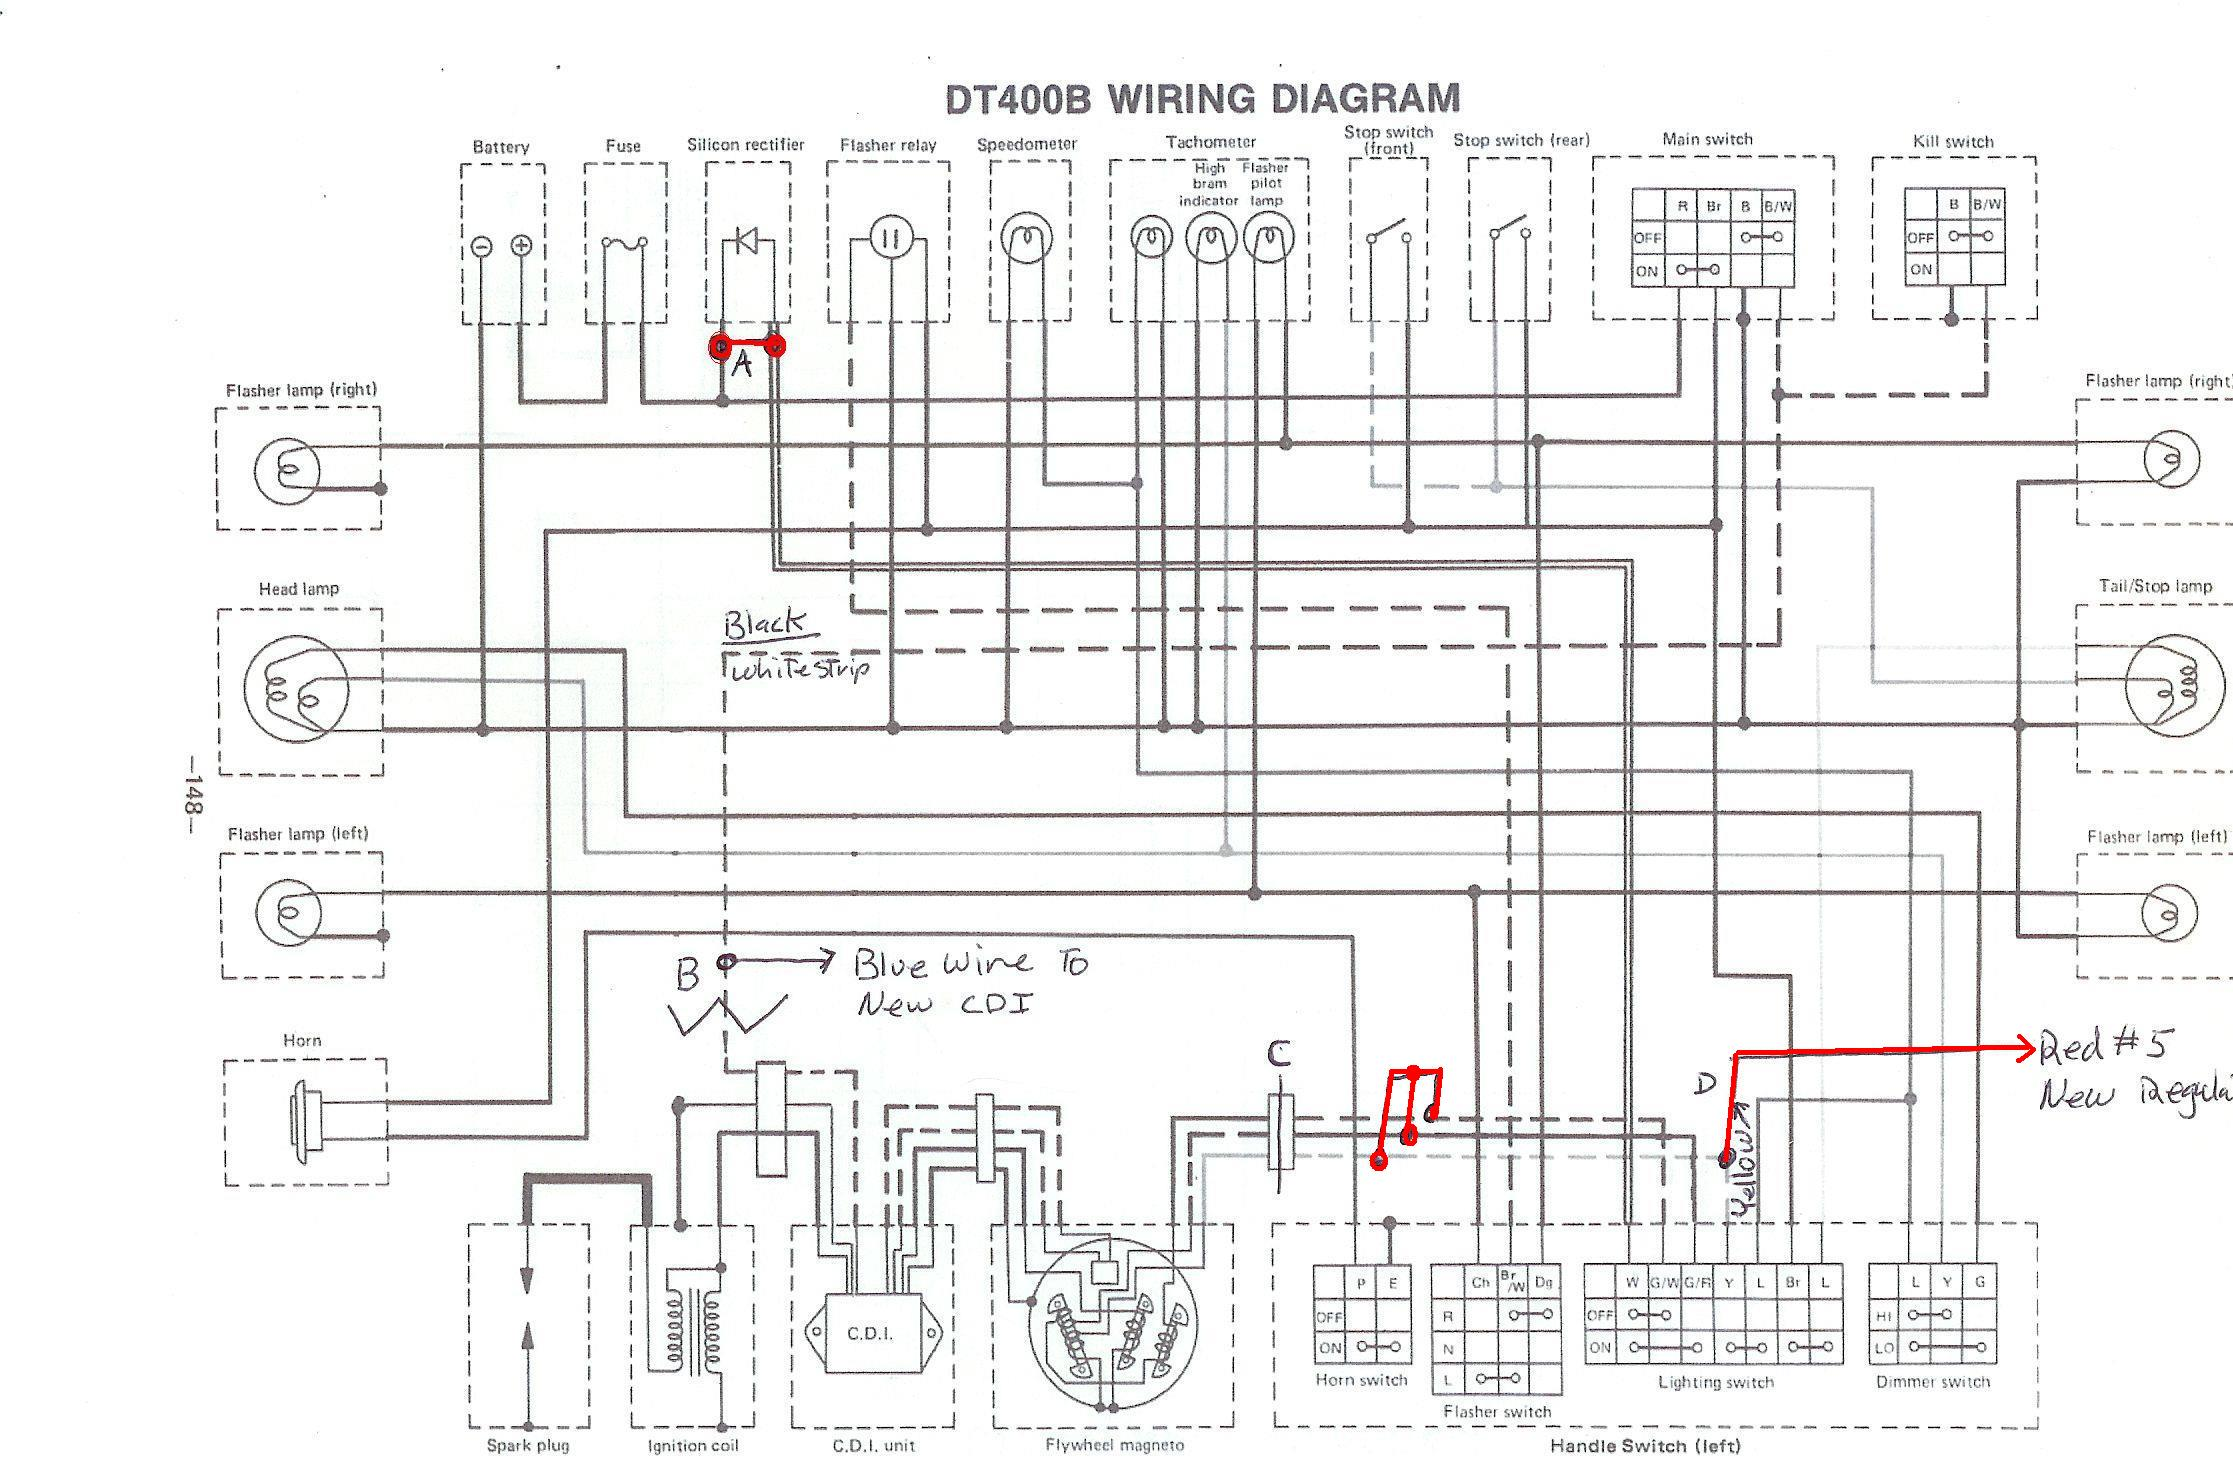 Fz700 Wiring Diagram Wiring Diagram Go